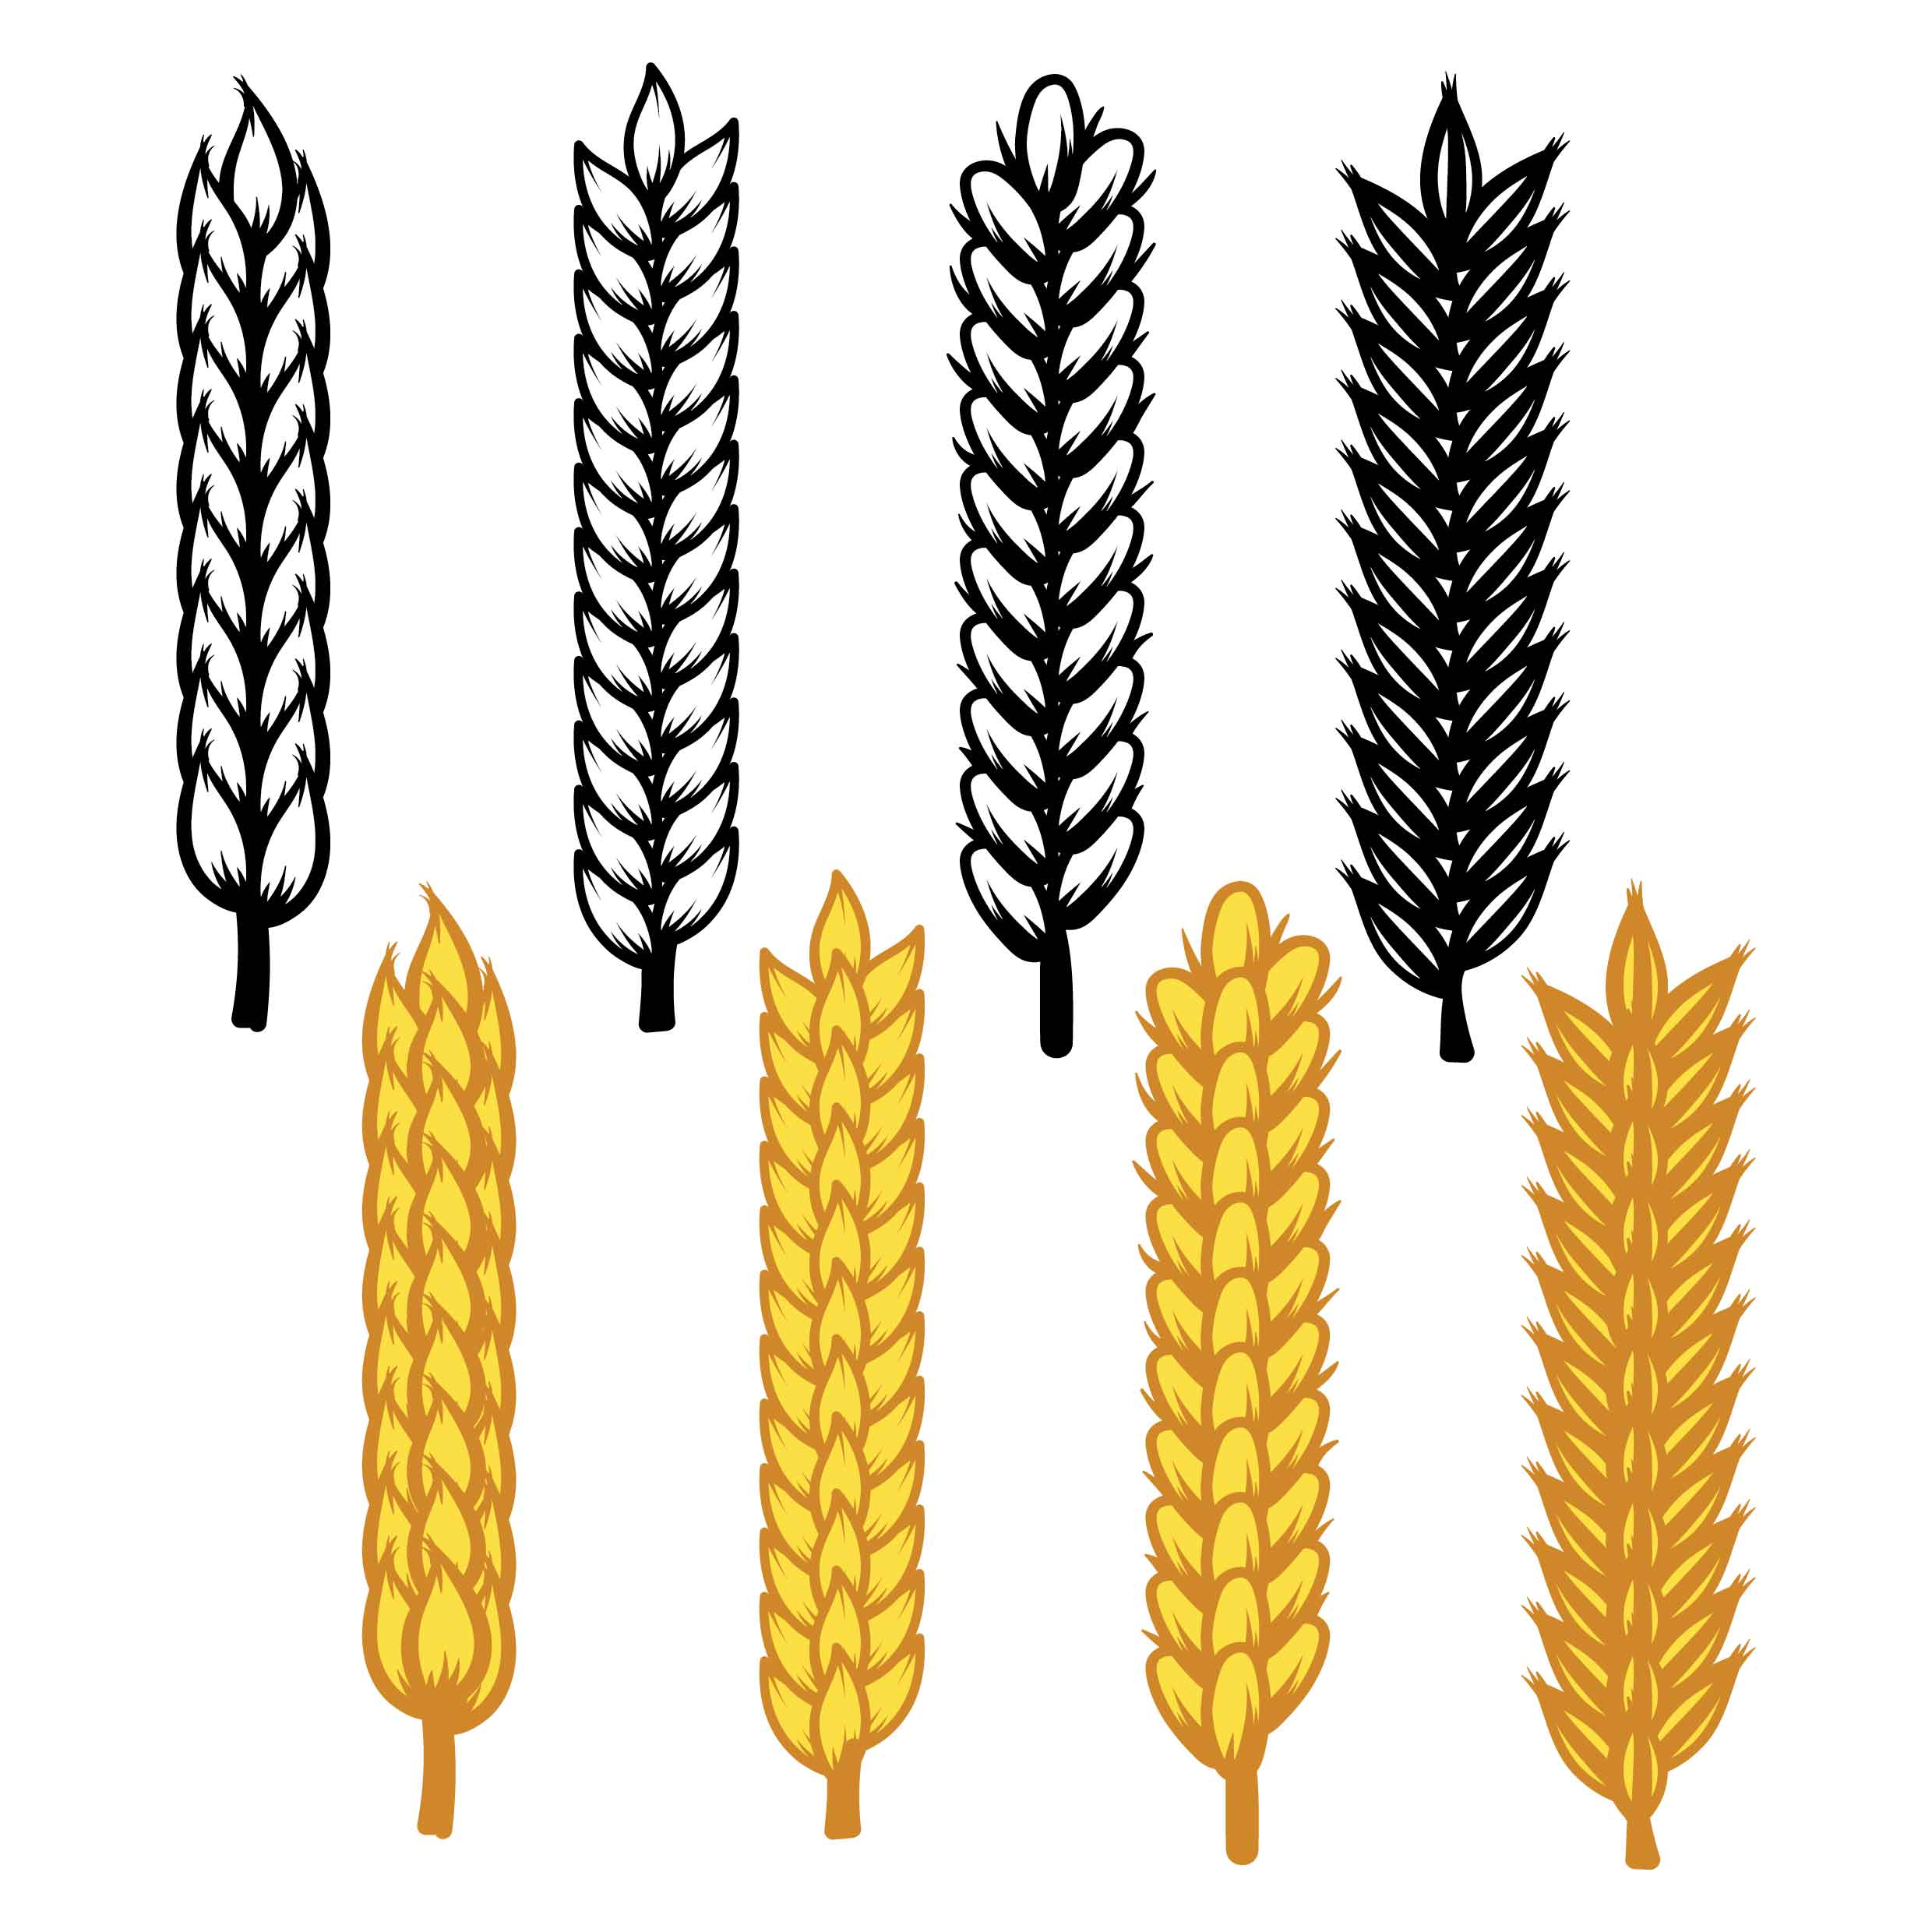 Wheat Ears Icon Vector - Download Free Vector Art, Stock ...